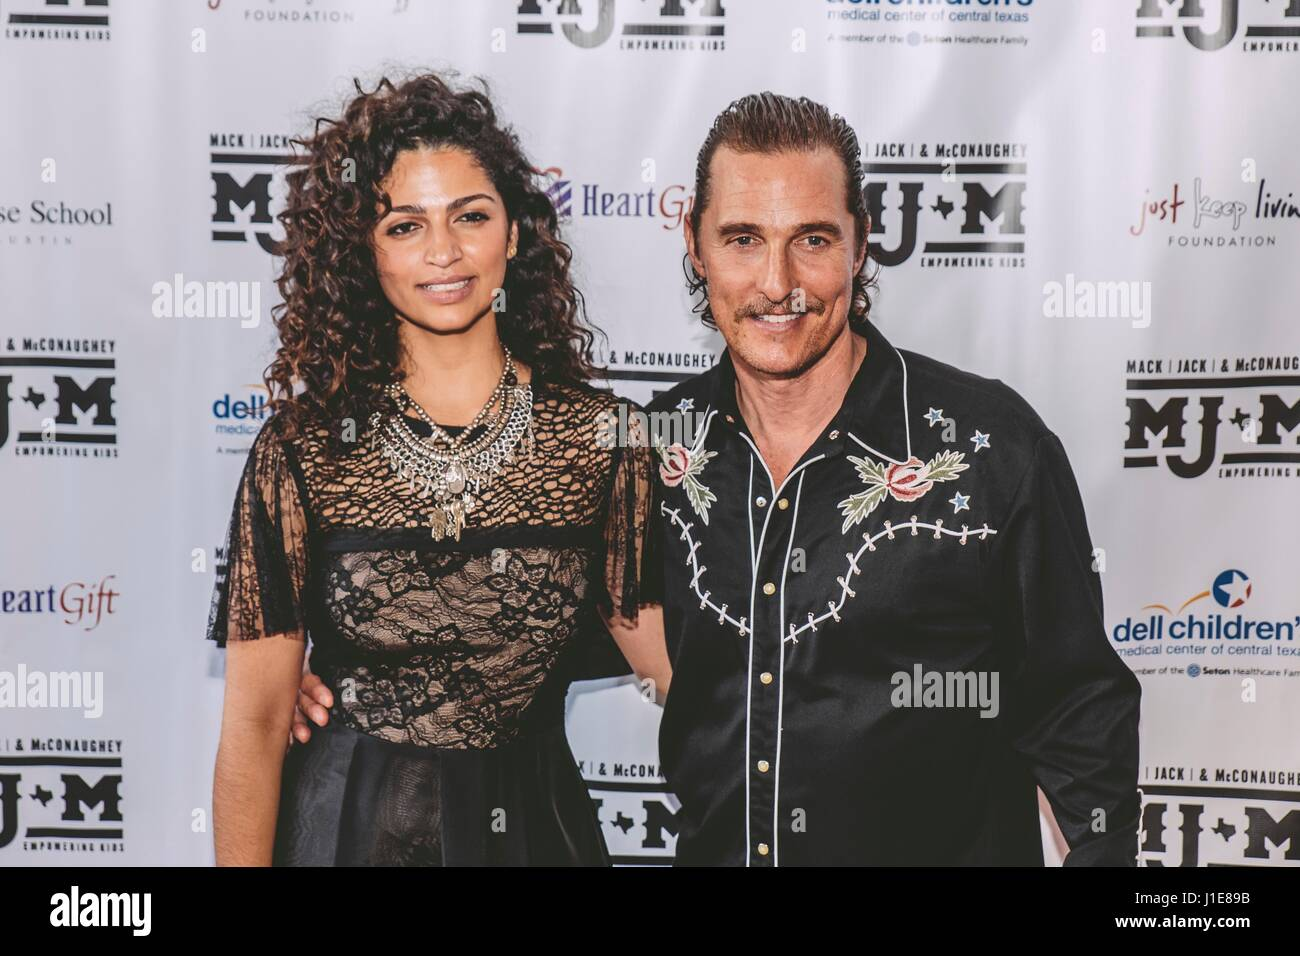 Austin, USA. 20th Apr, 2017. Camila Alves, Matthew McConaughey arrive at the 2017 Mack, Jack & McConaughey on - Stock Image